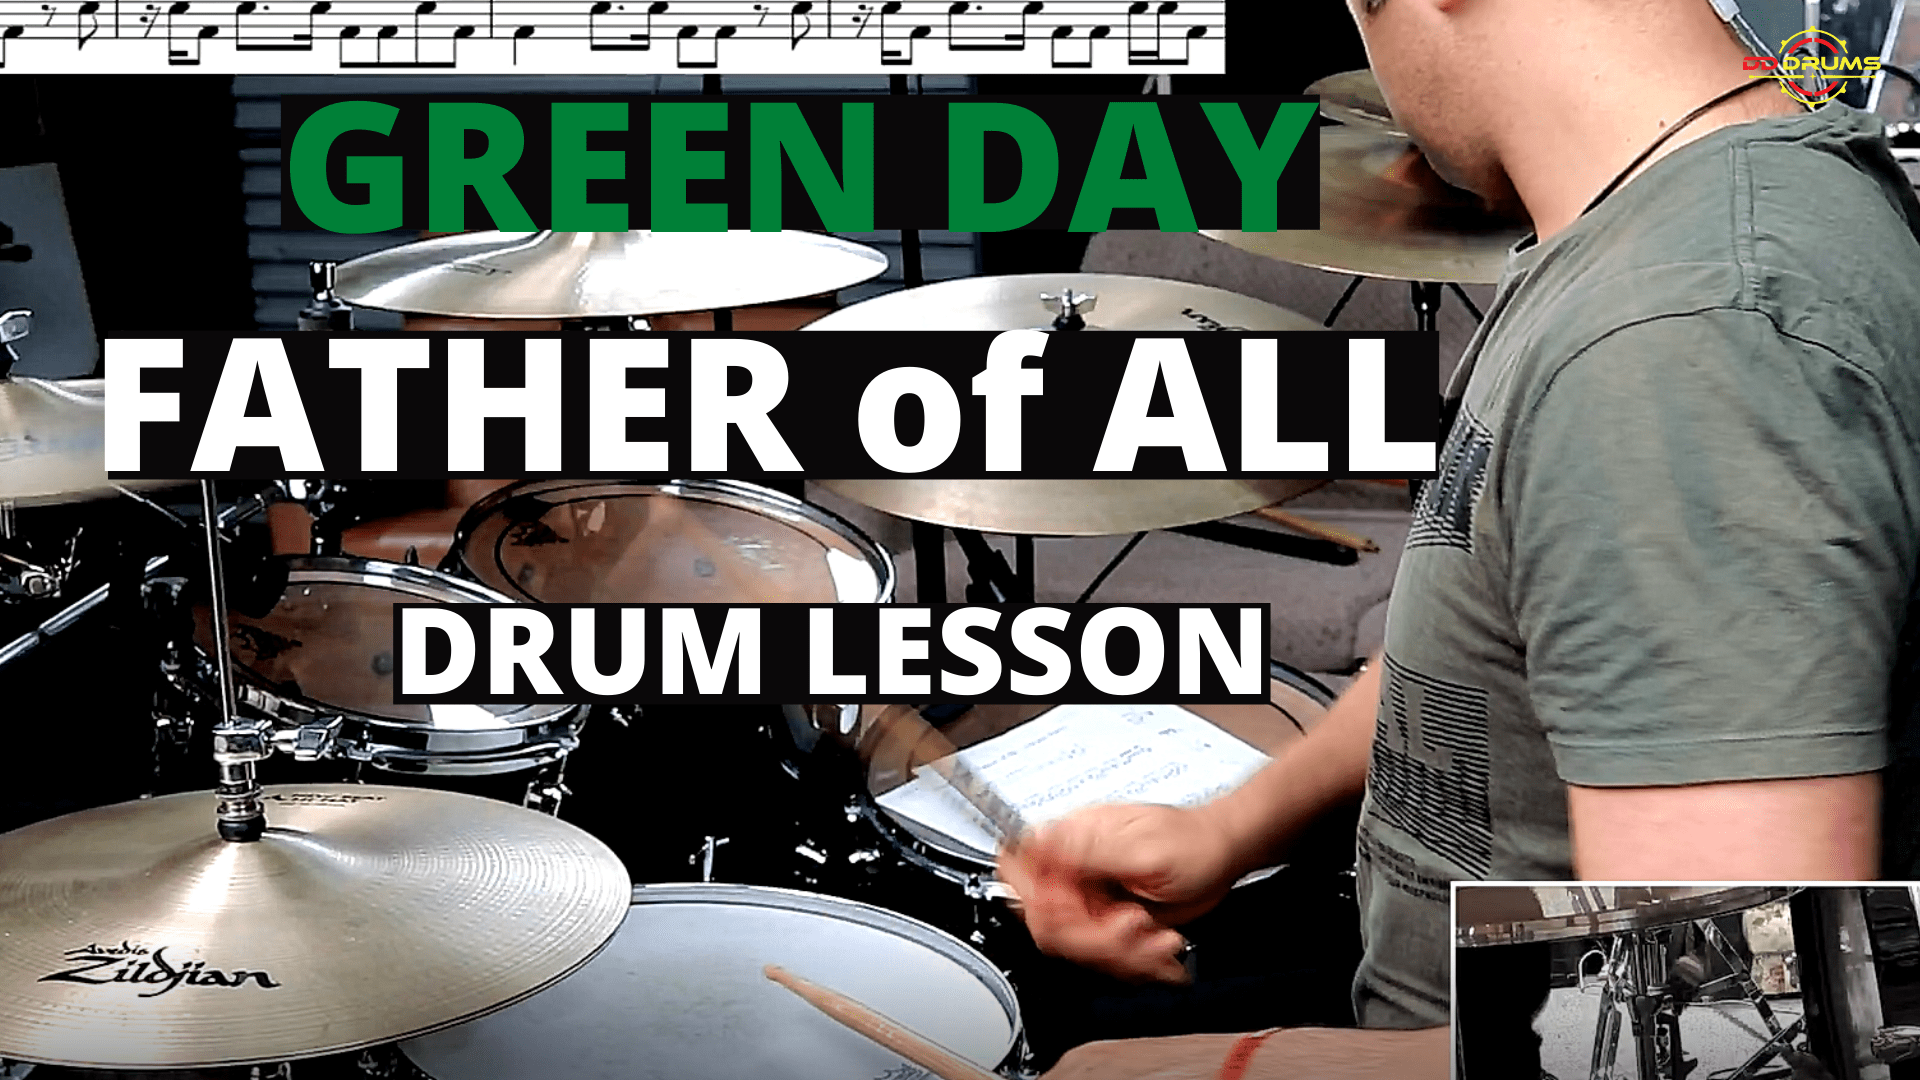 How to play 'Father of All' by Green Day on Drums – Drum Lesson